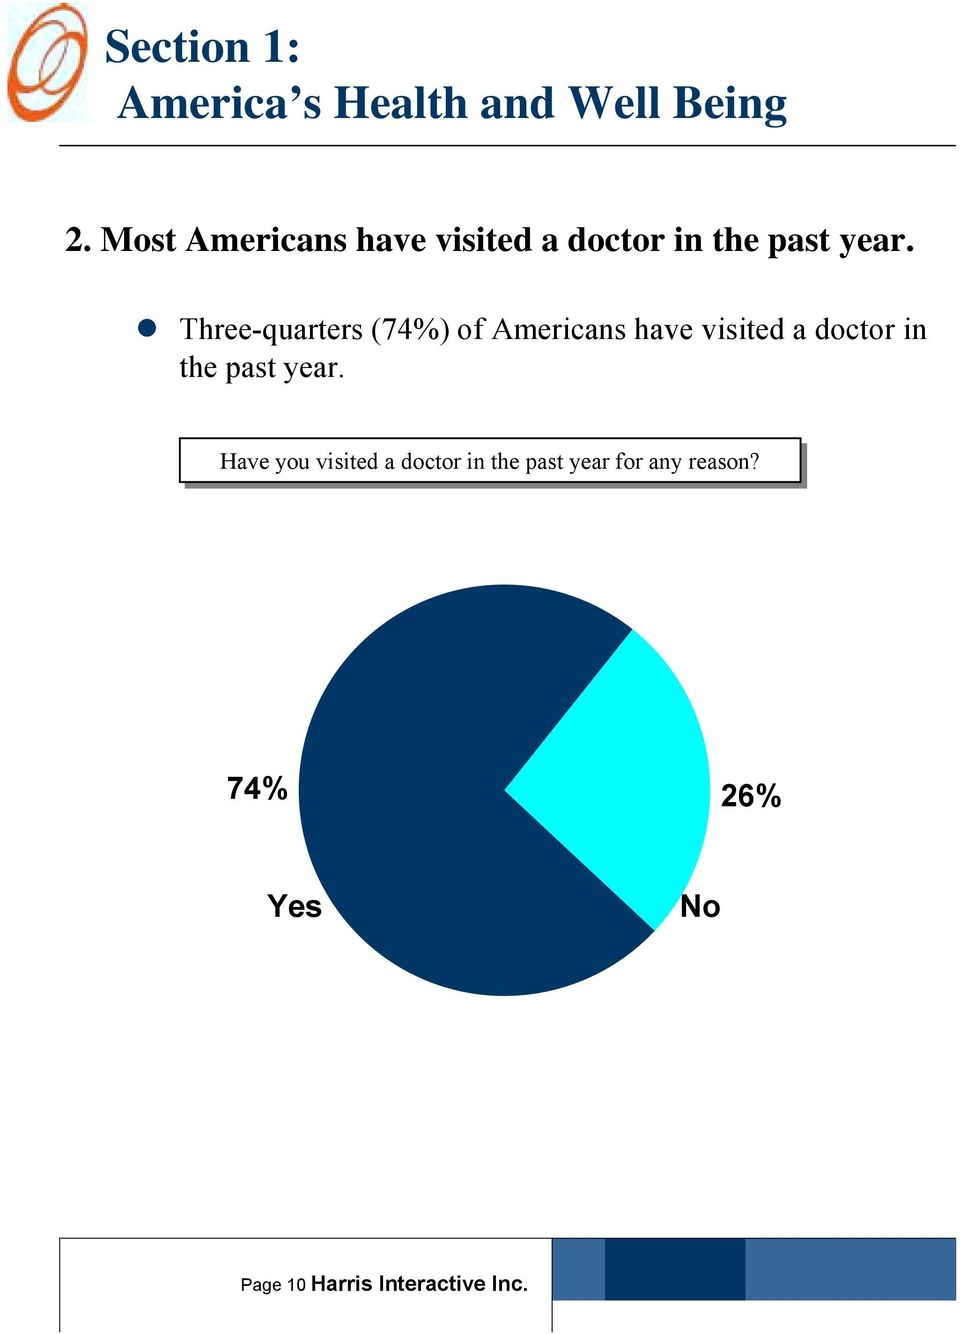 """ Three-quarters (74%) of Americans have visited a doctor in the past"